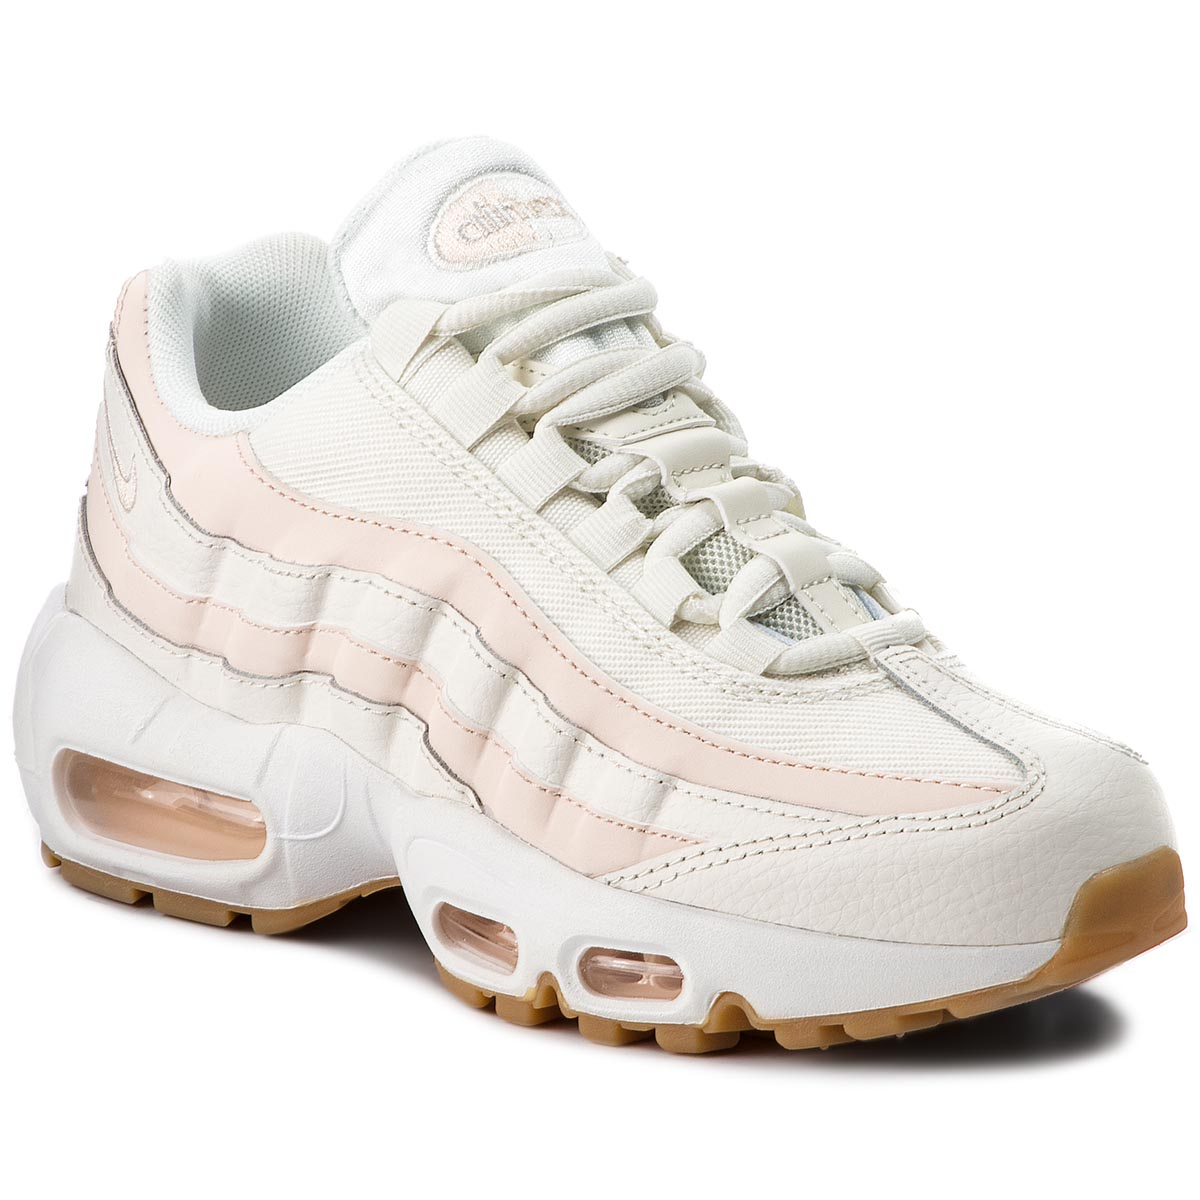 Buty NIKE - Air Max 95 307960 111 Sail/Guava Ice/Gum Light Brown